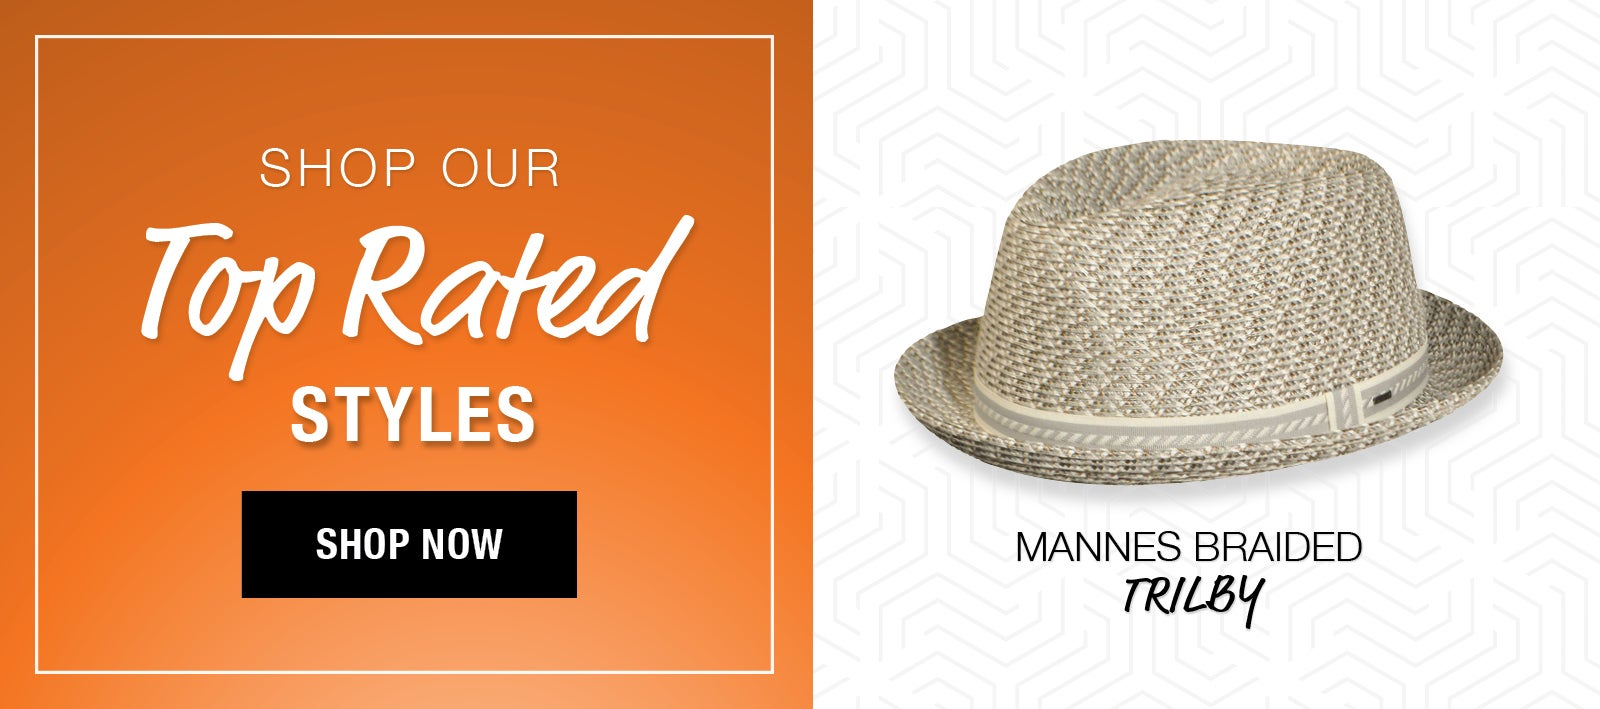 Shop Our Top Rated Styles